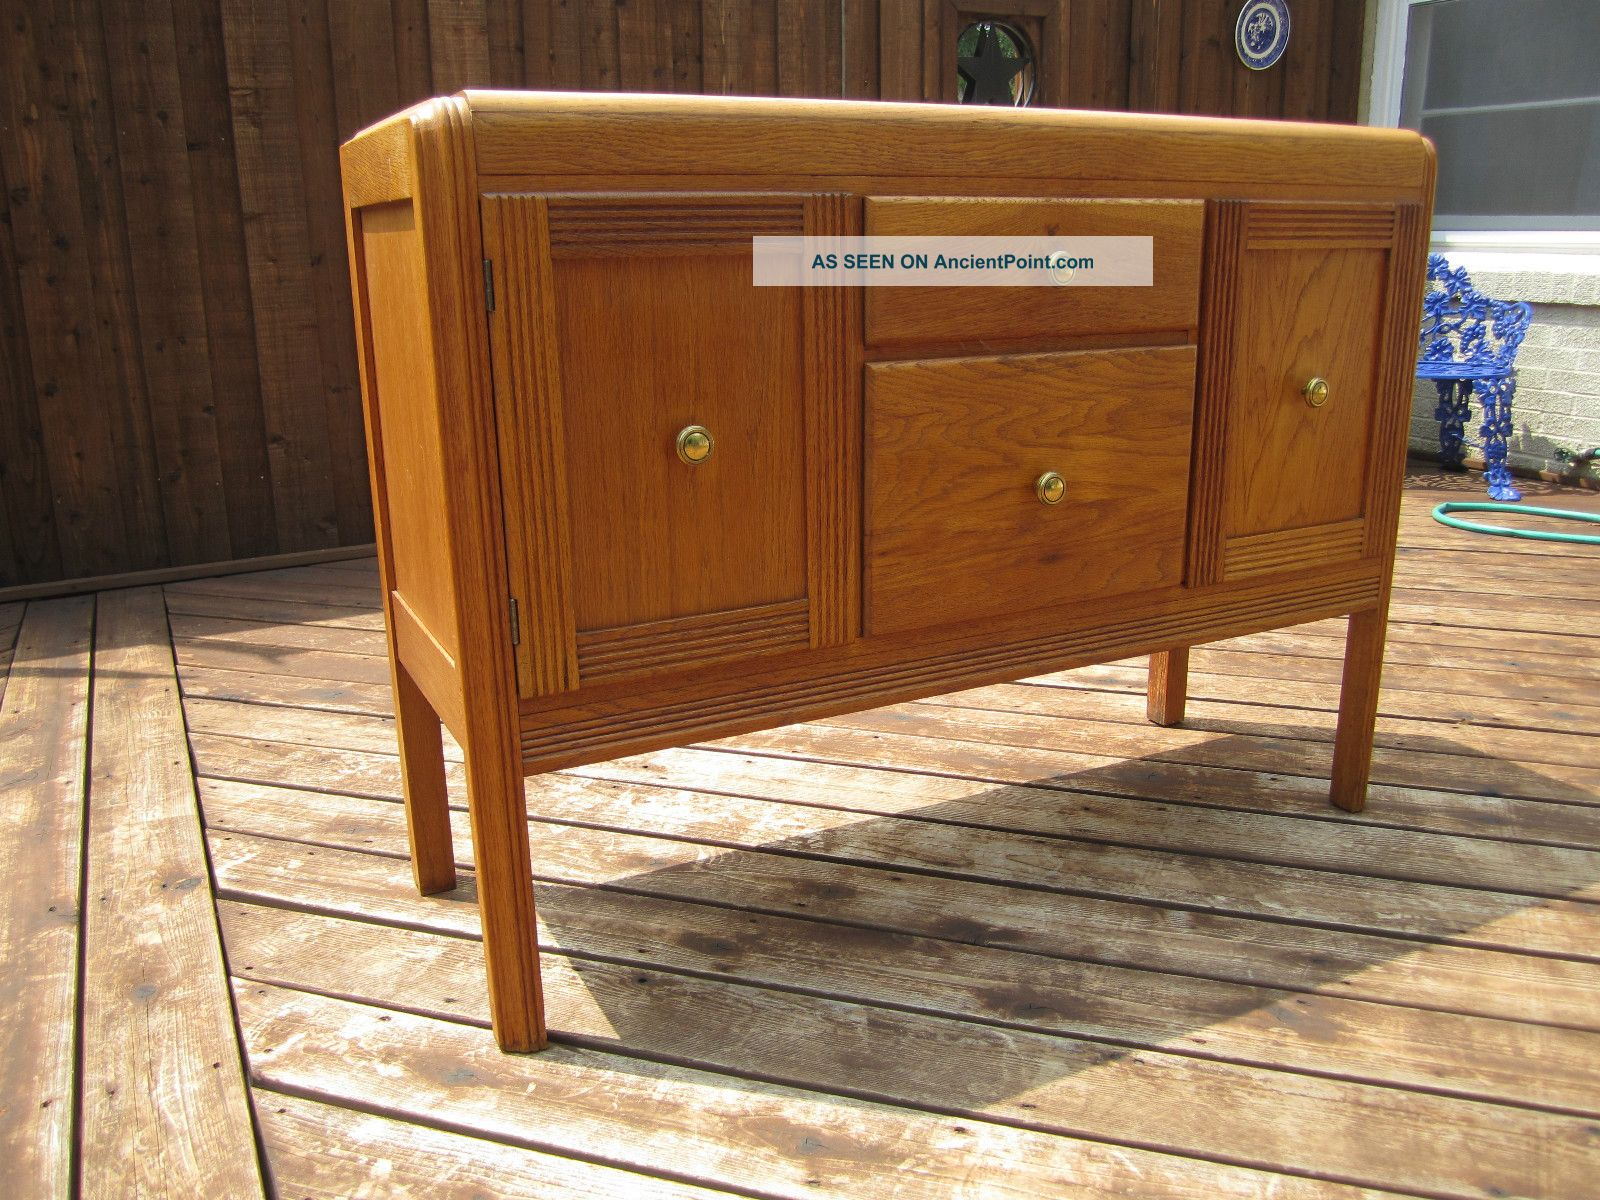 Antique Buffet Cabinet - Art Deco Details Post-1950 photo